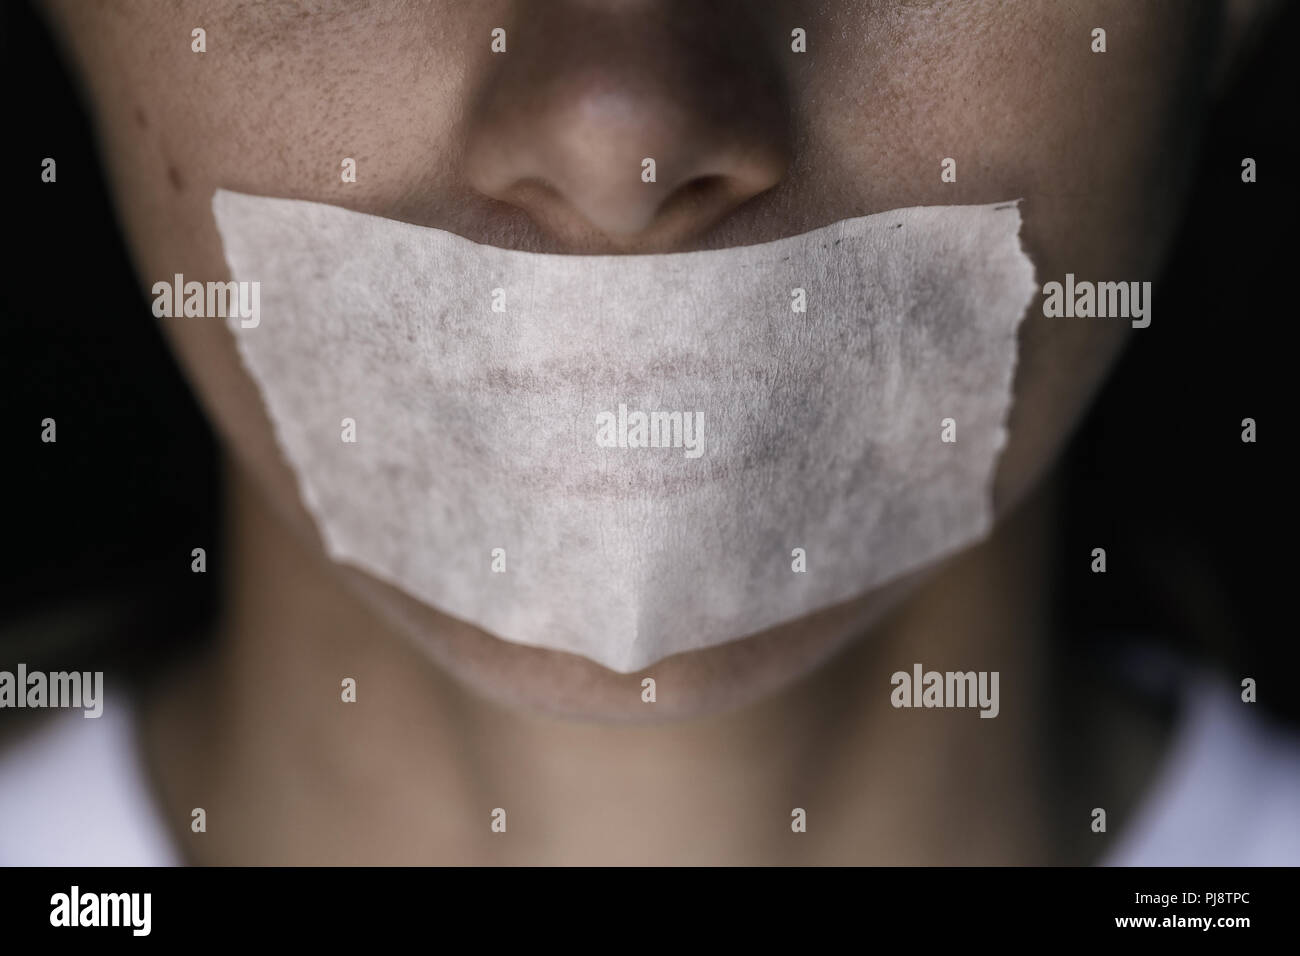 Censorship in the Modern World: A man's mouth sealed with an adhesive tape, close-up Stock Photo